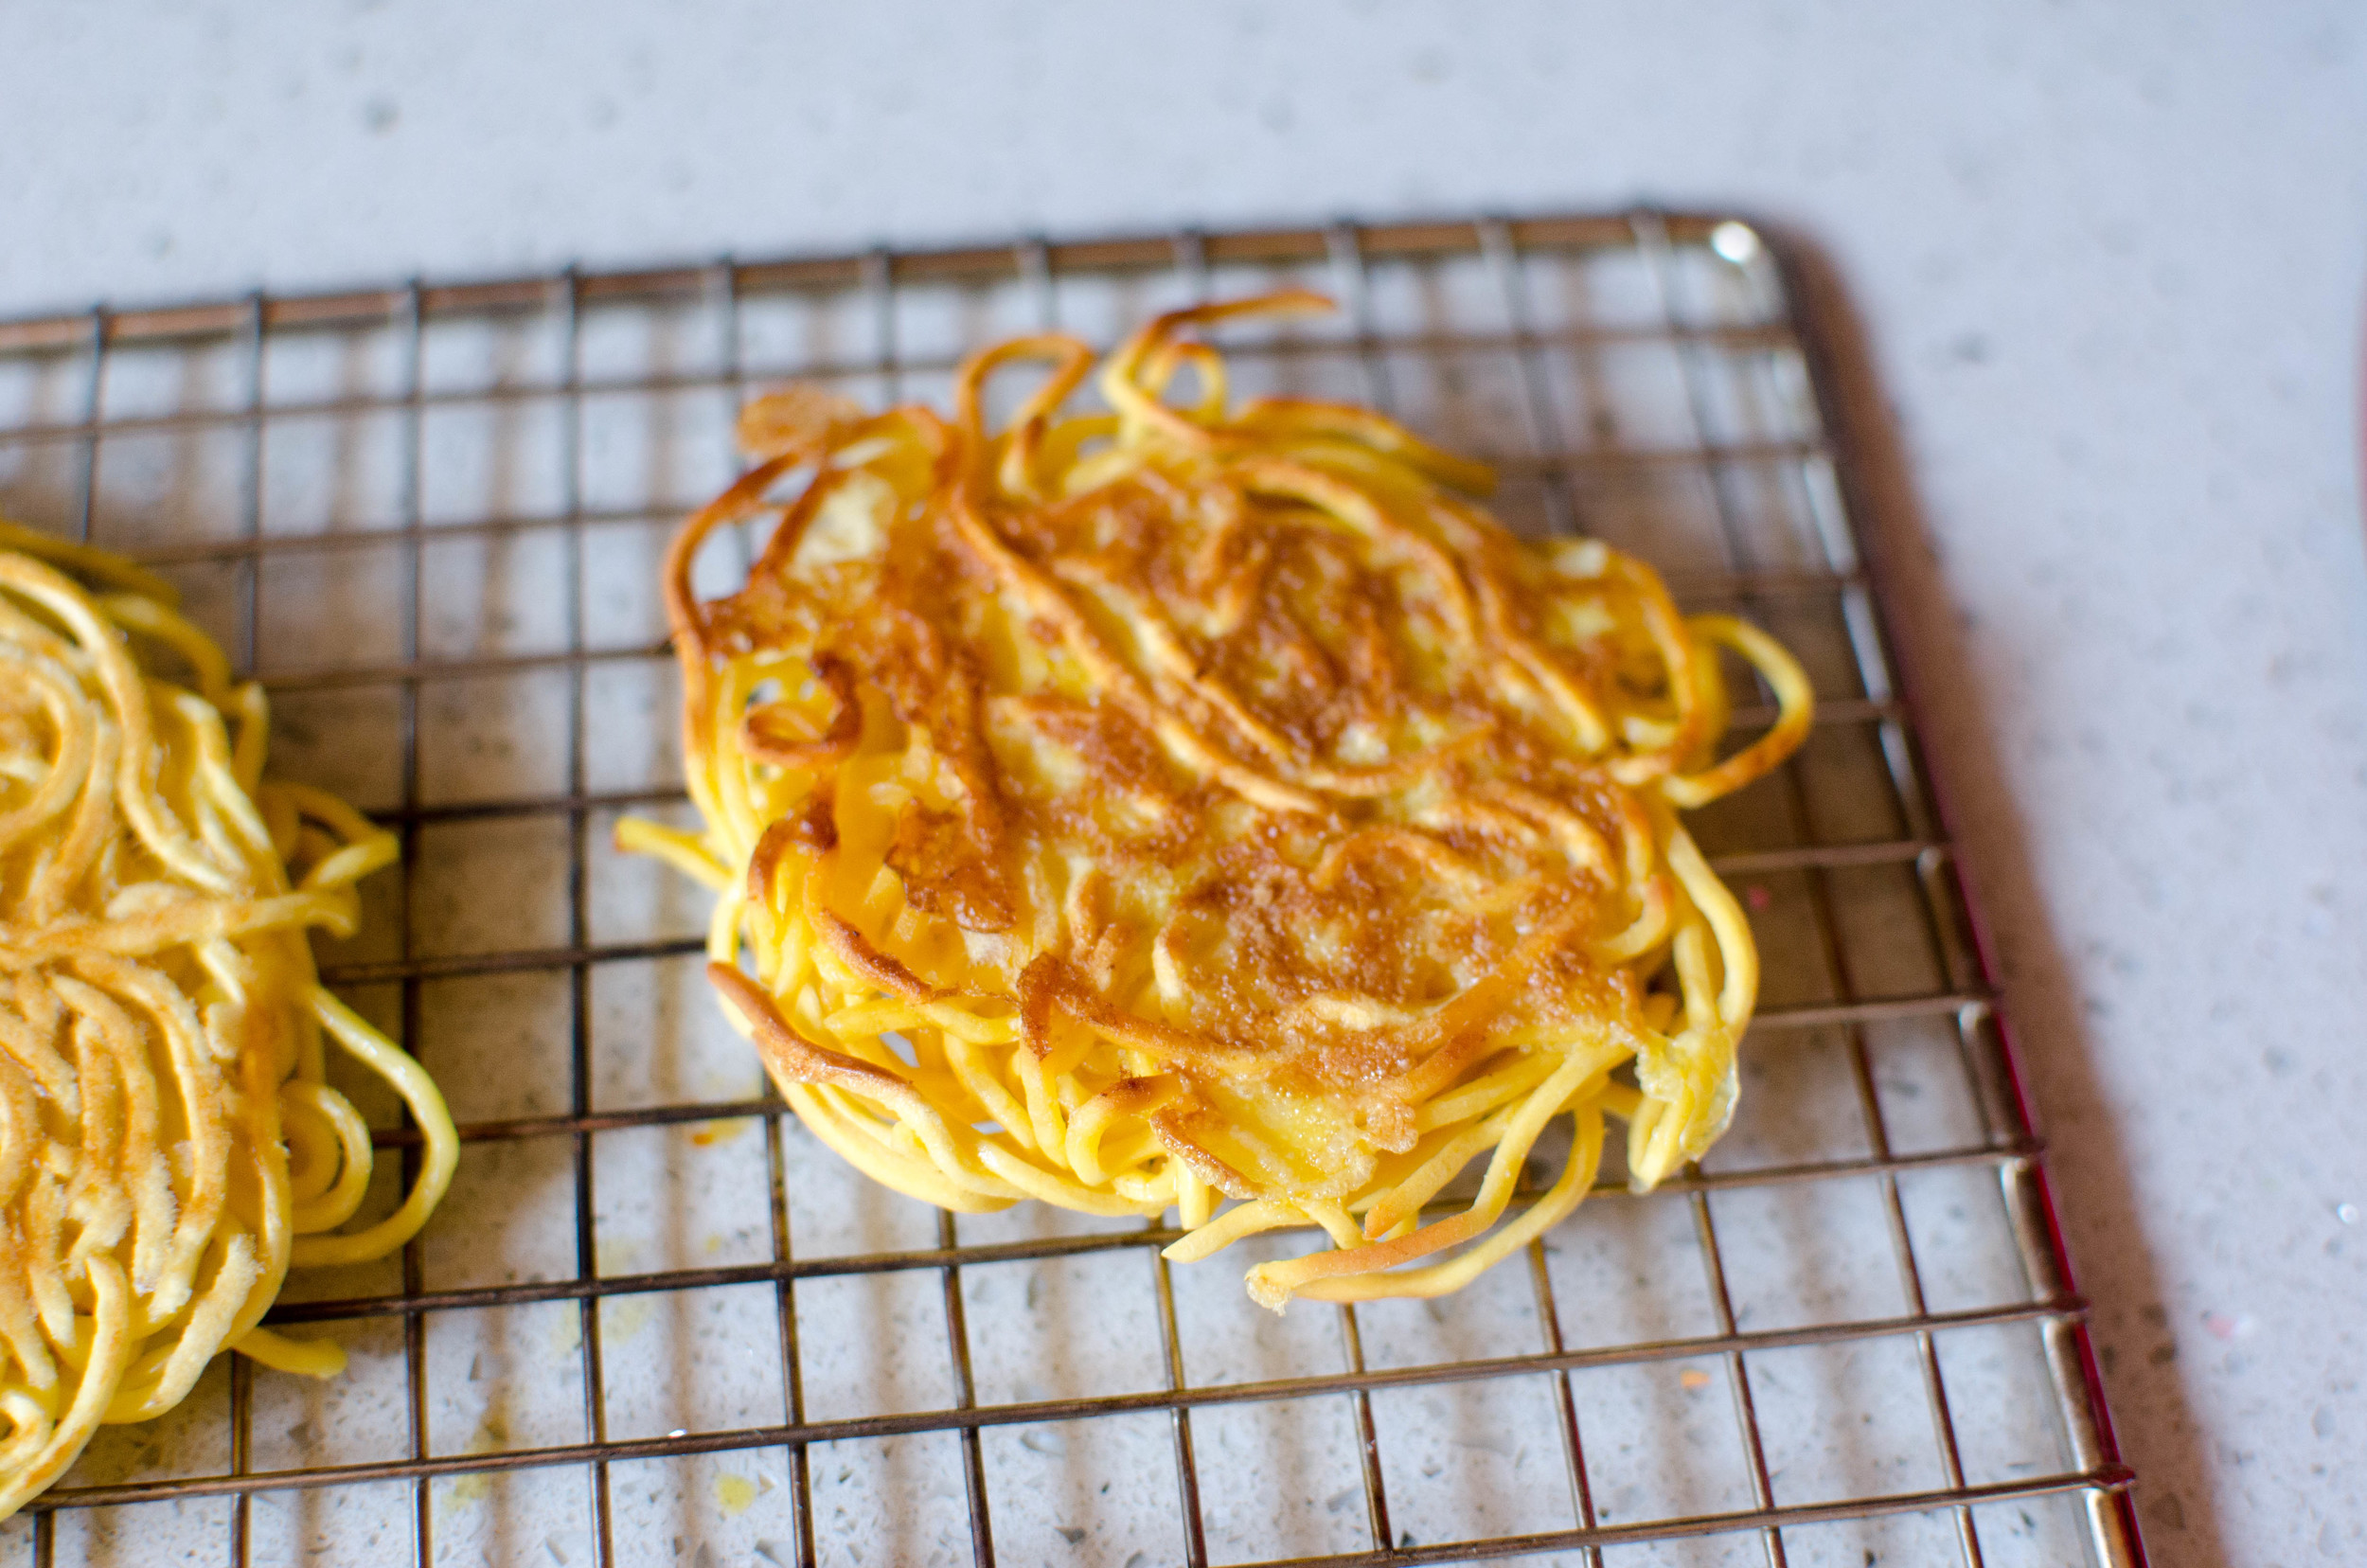 (1)Uncooked with Egg:  This was one of my least favorite. For uncooked ramen noodles, you have you use egg to act as a binder, otherwise you end up with ramen chips. It had a raw doughy flavor. The egg was good, but just not what you want for a ramen burger.